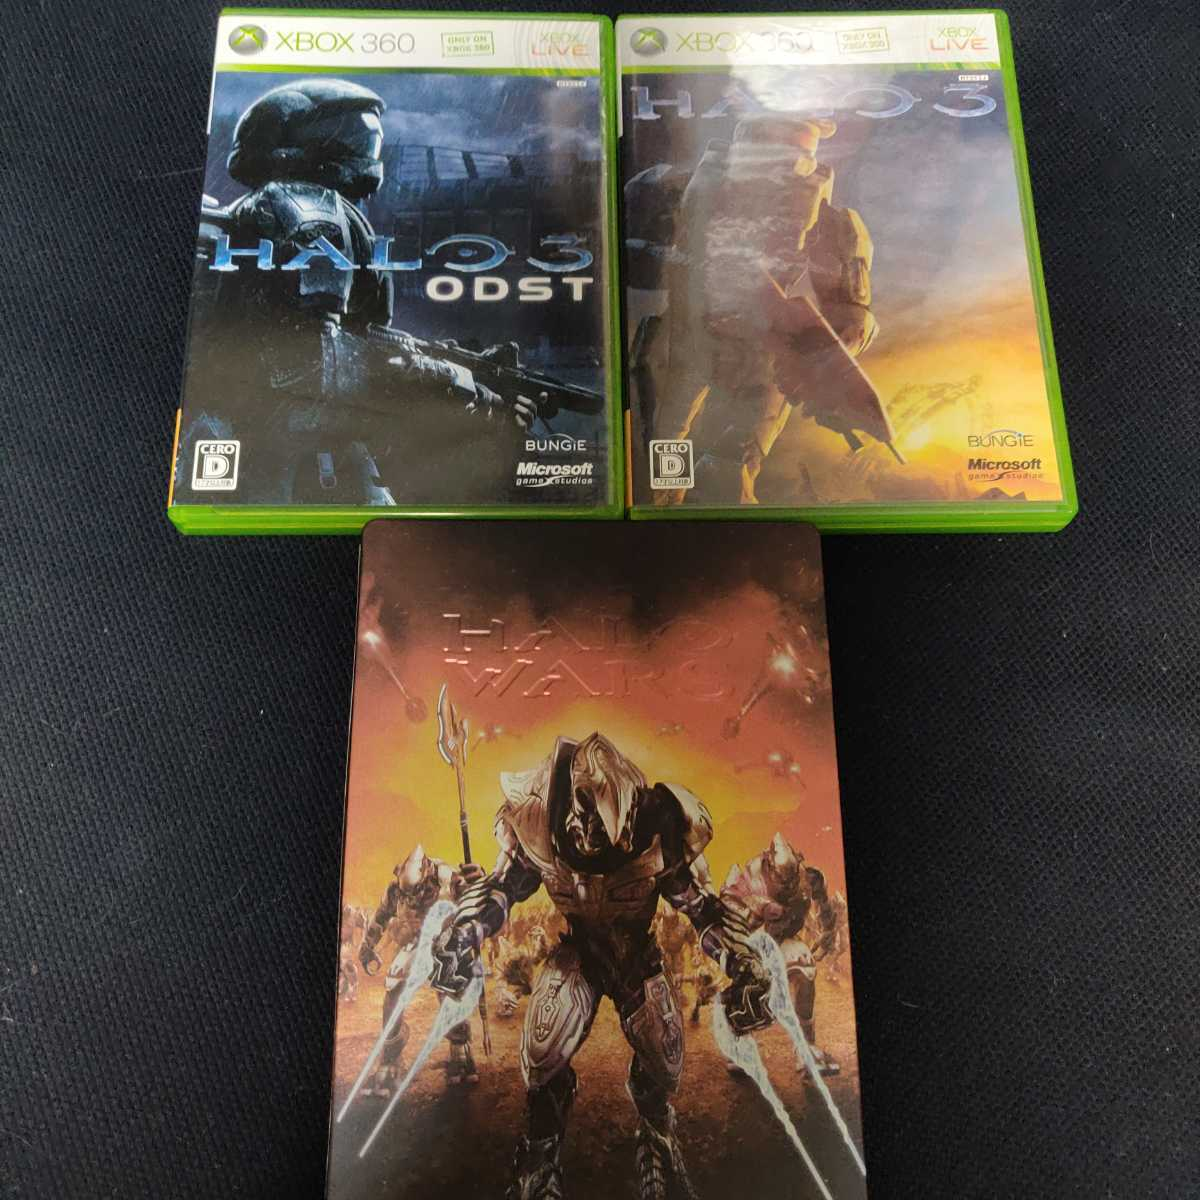 Xbox360 HALO 3 3点セット / HALO3 + ODST + HALO WARS 限定版